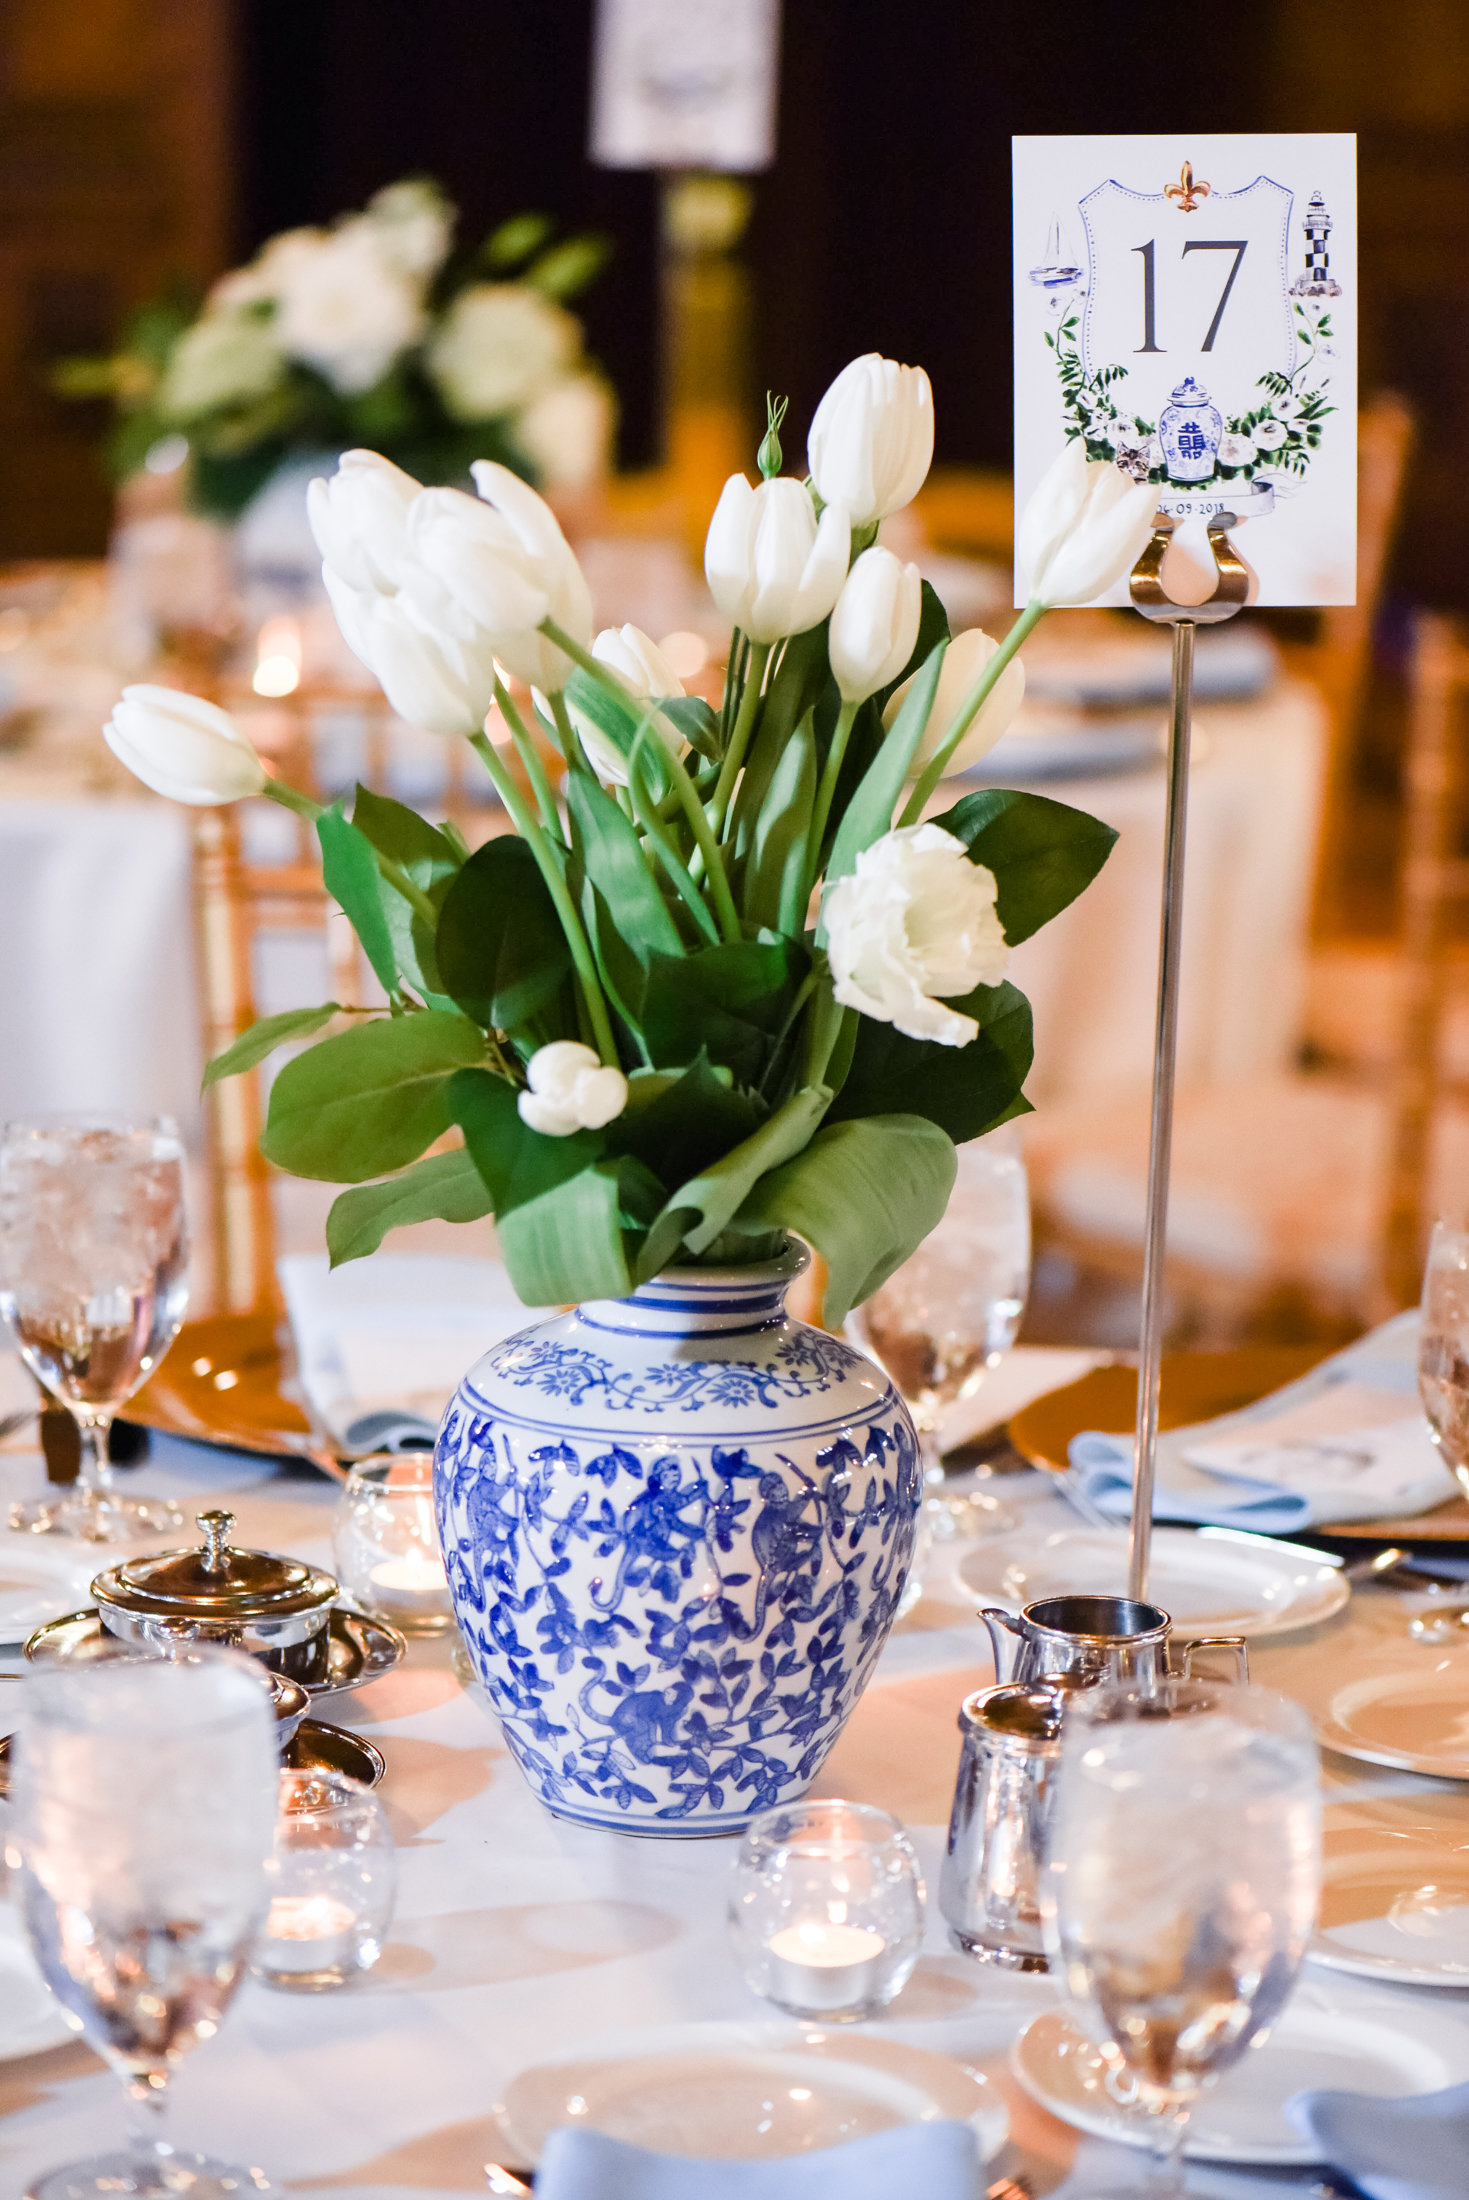 Blue and White Pottery Vase for Wedding